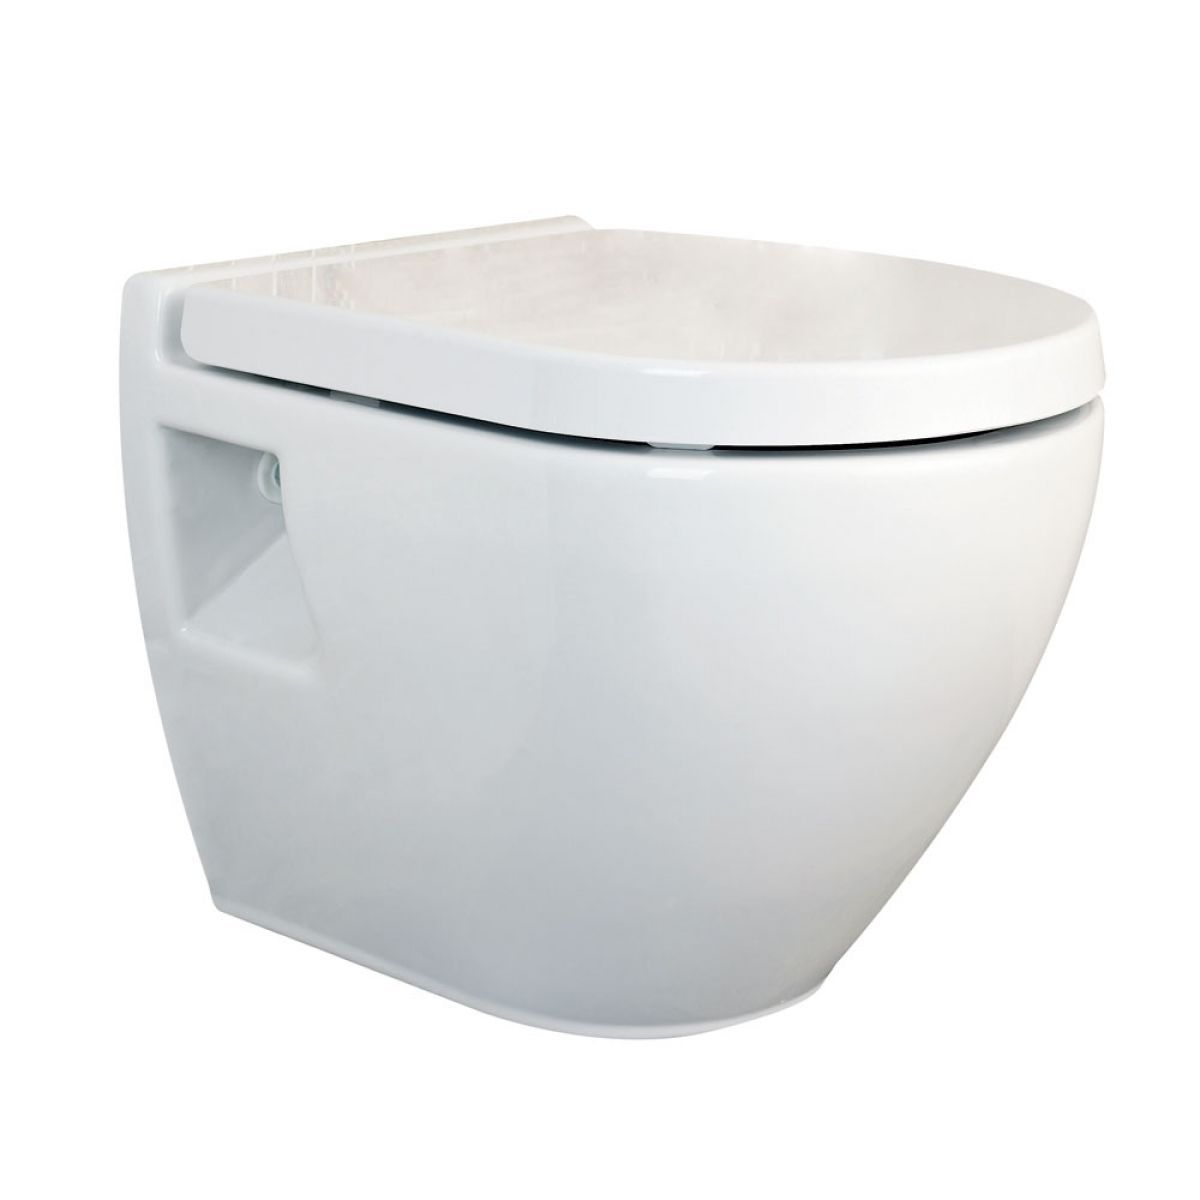 Hudson Reed Luna Round Wall Hung Toilet with Soft Close Seat